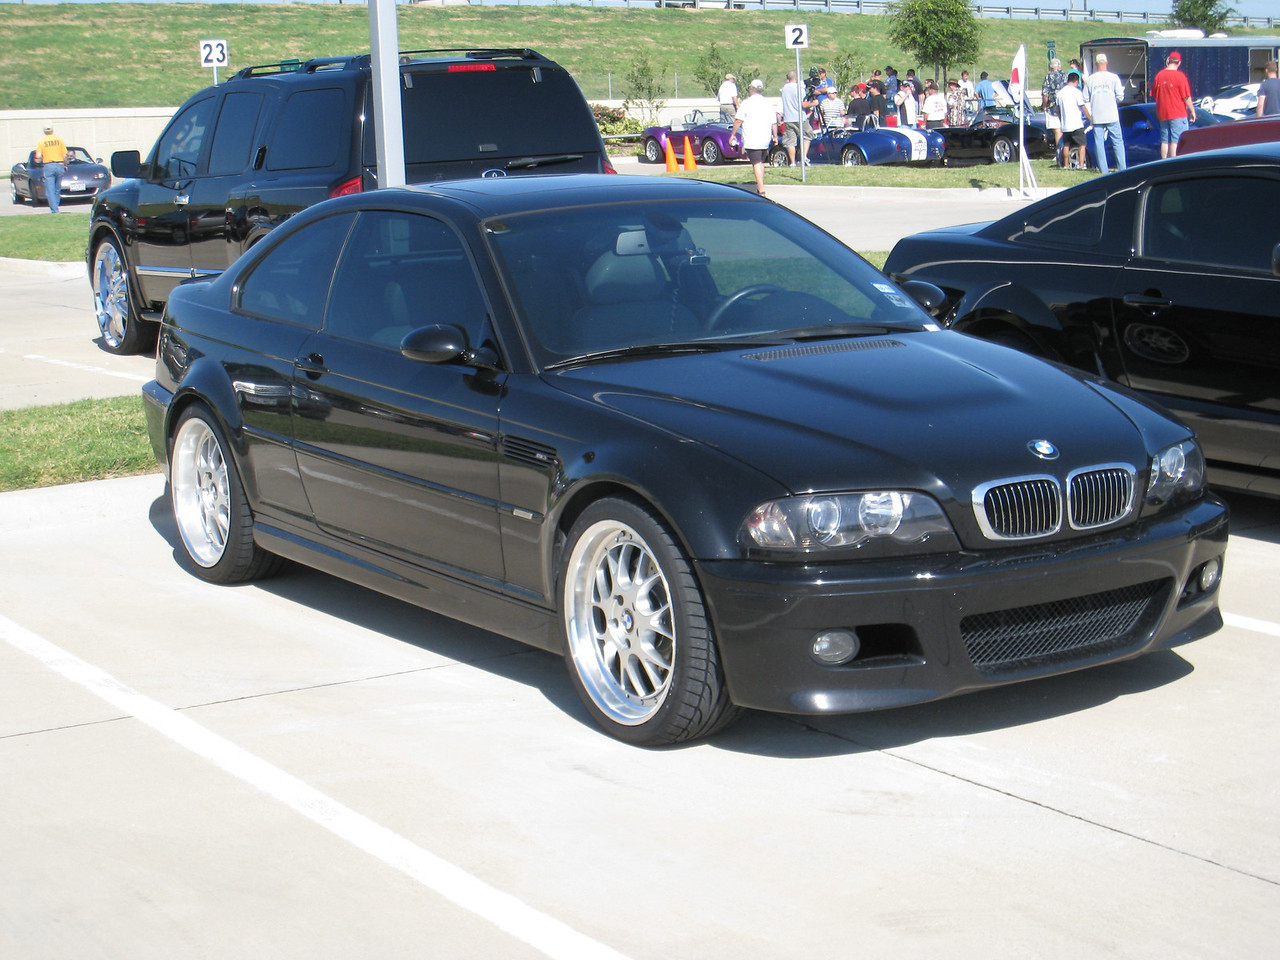 E46 BMW M3 - Nice wheels!